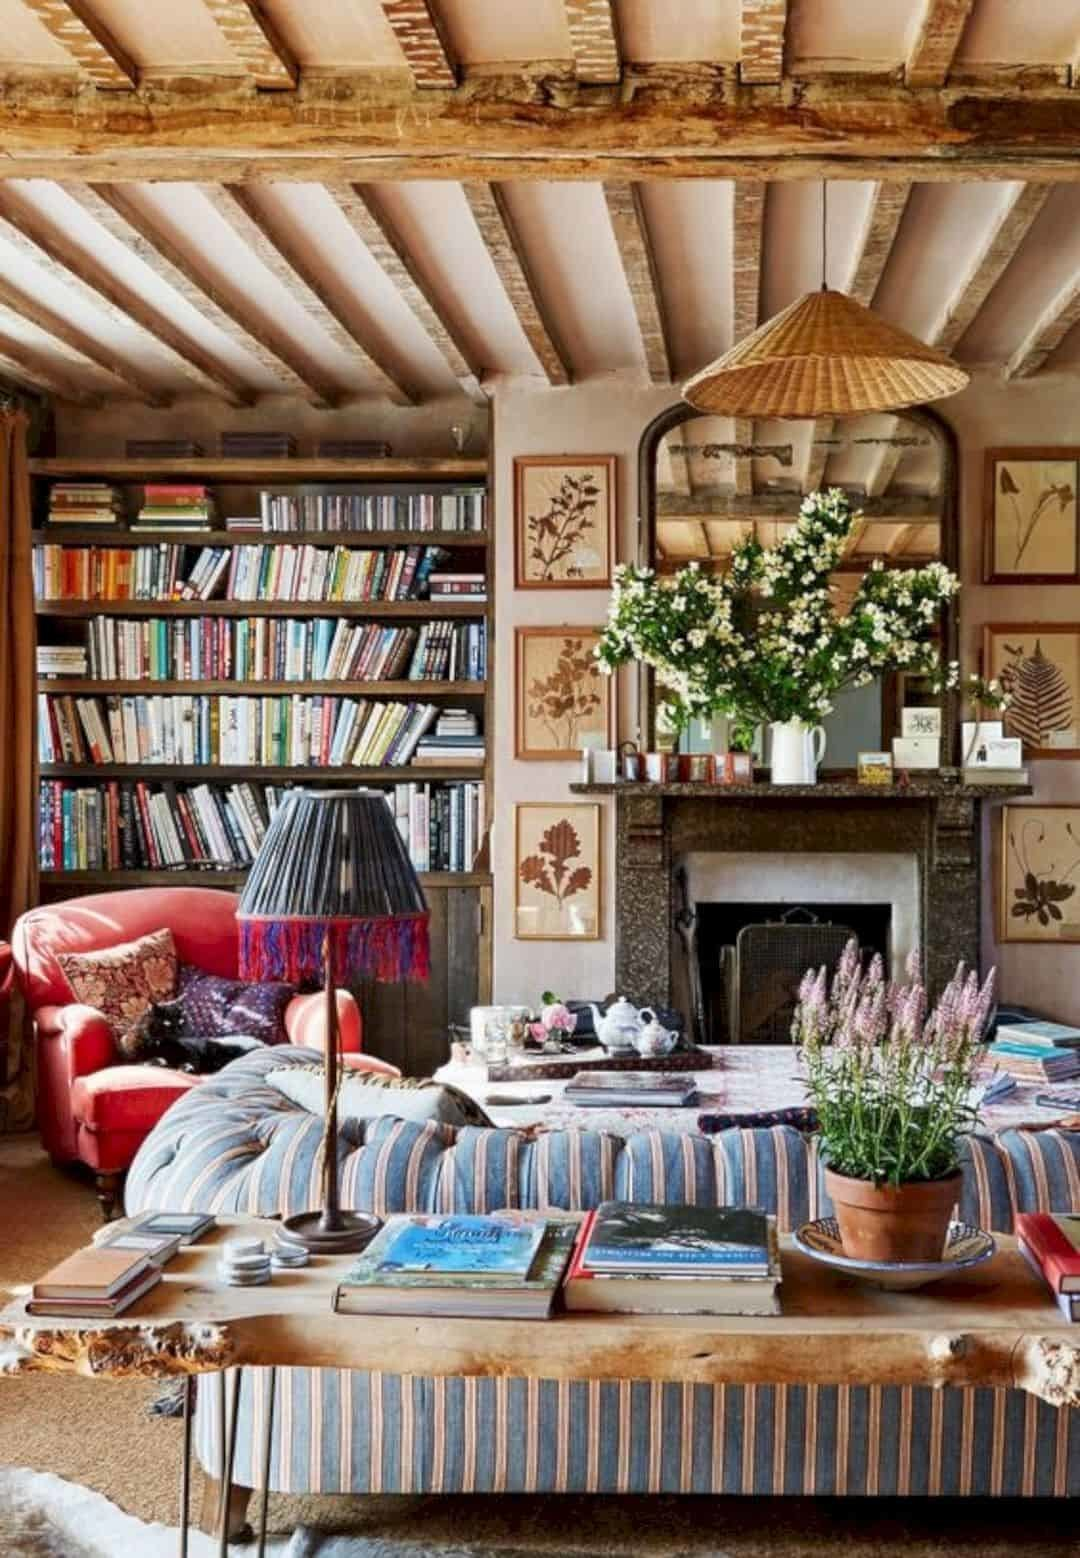 English Country Cottage | Country Homes and Manor Decor 1